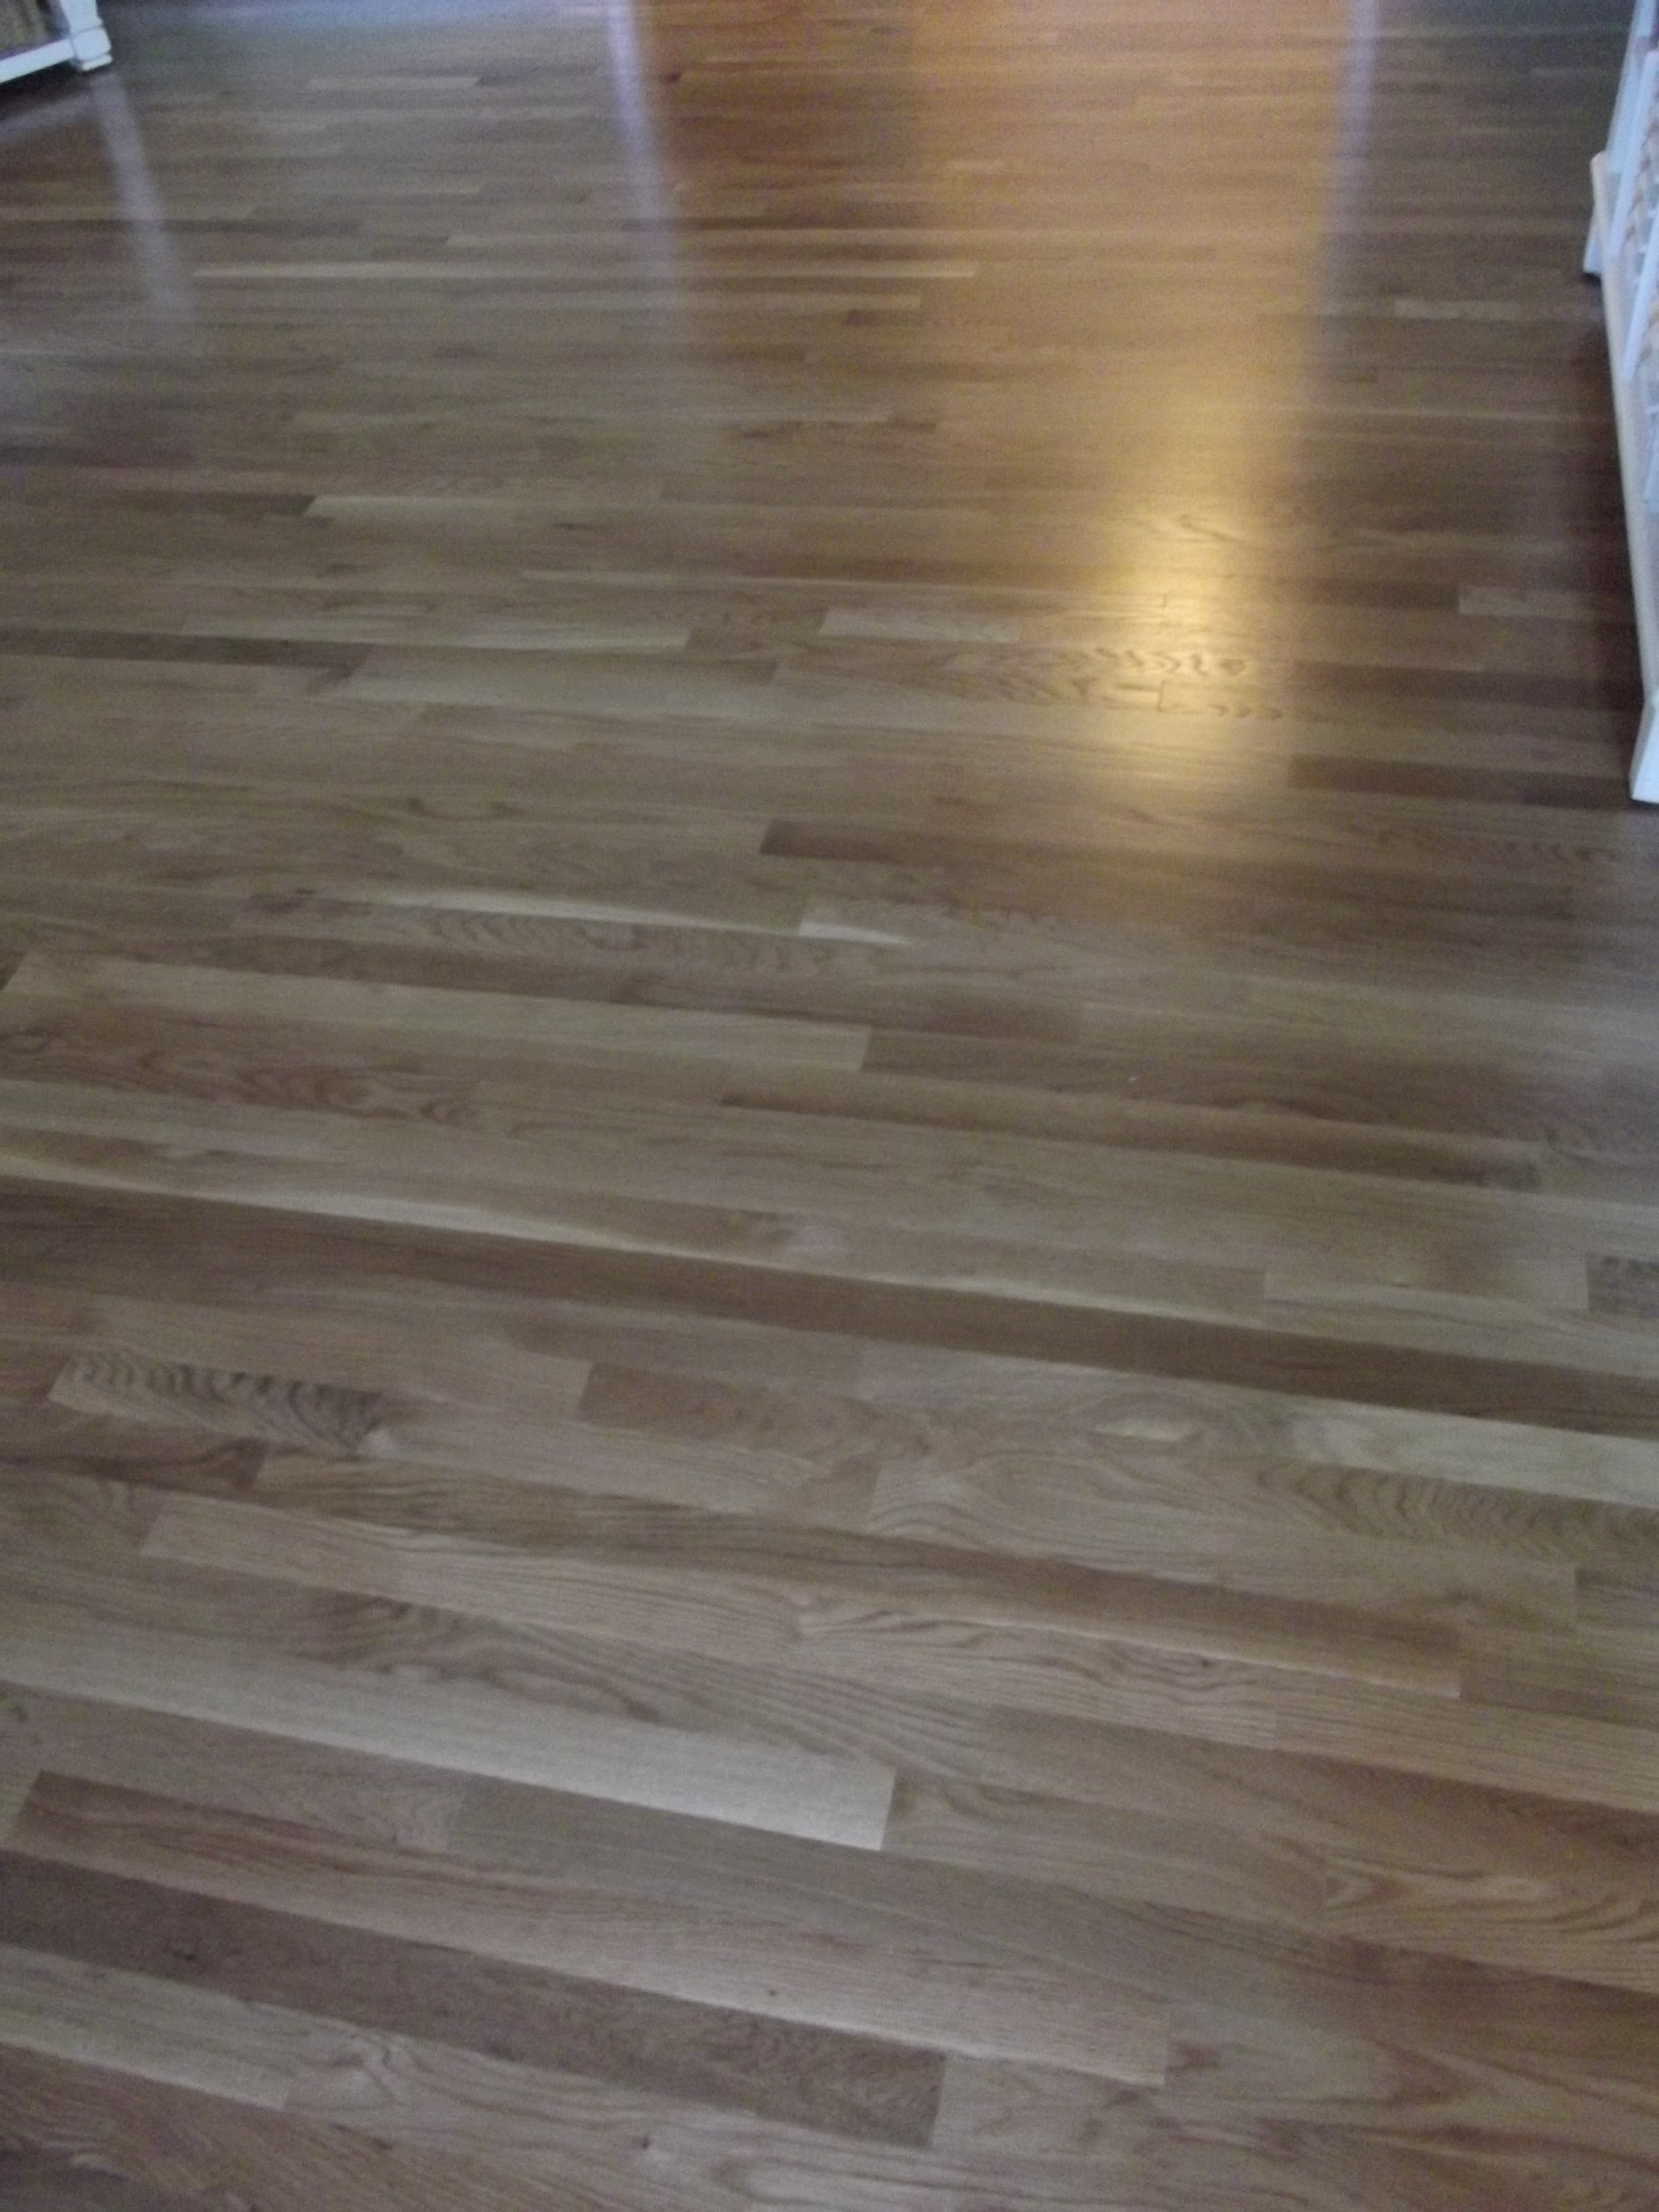 R s flooring brentwood tn business directory for Tennessee hardwood flooring